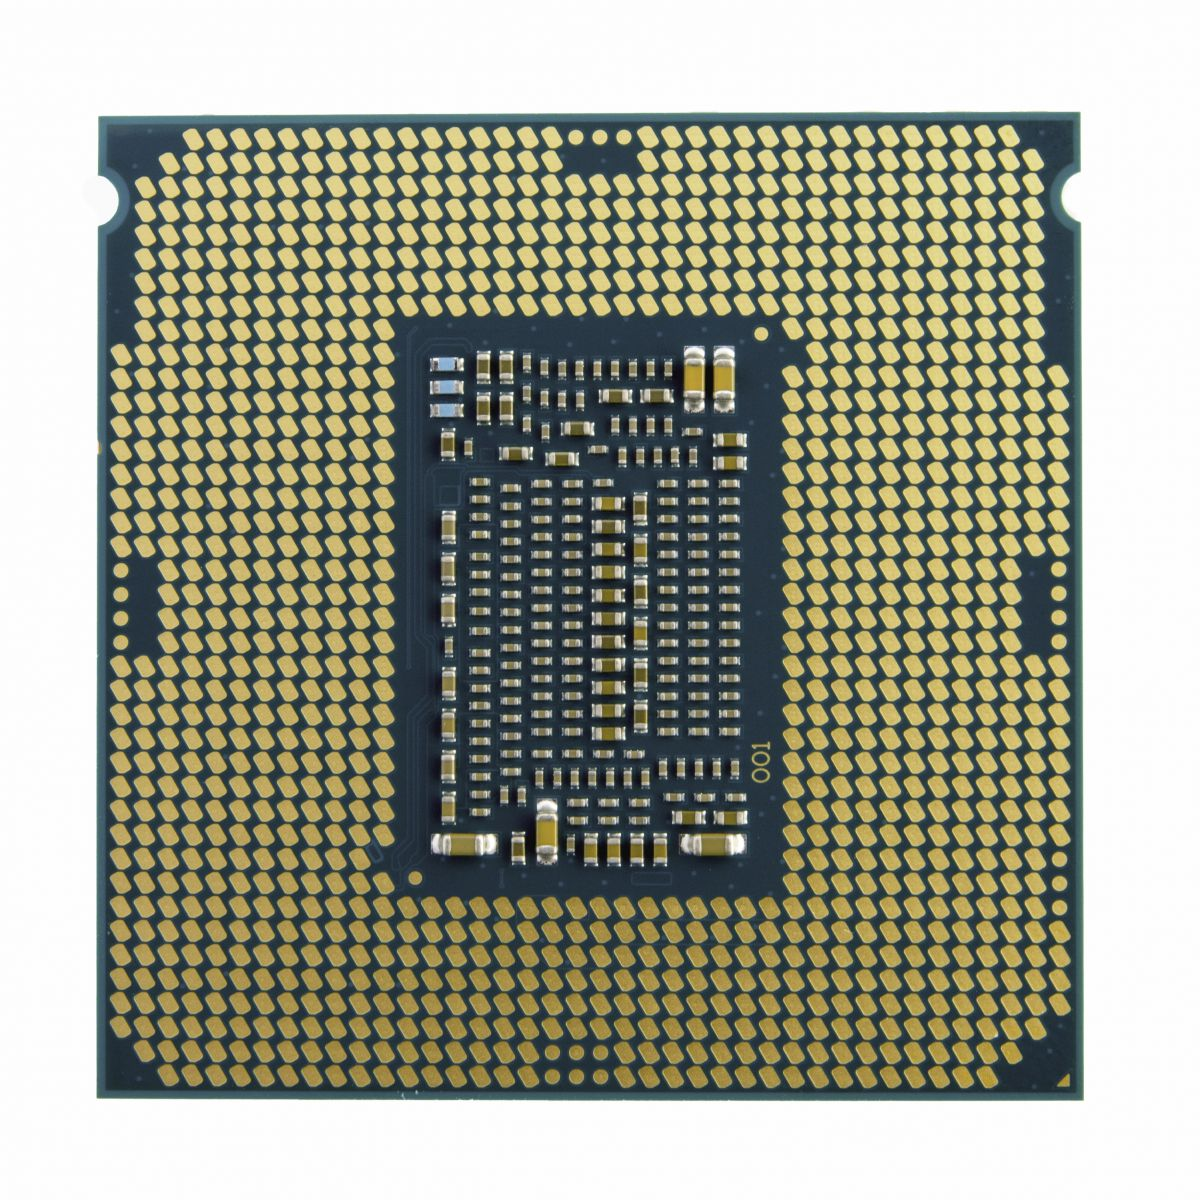 intel core i911900 25ghz s1200 box